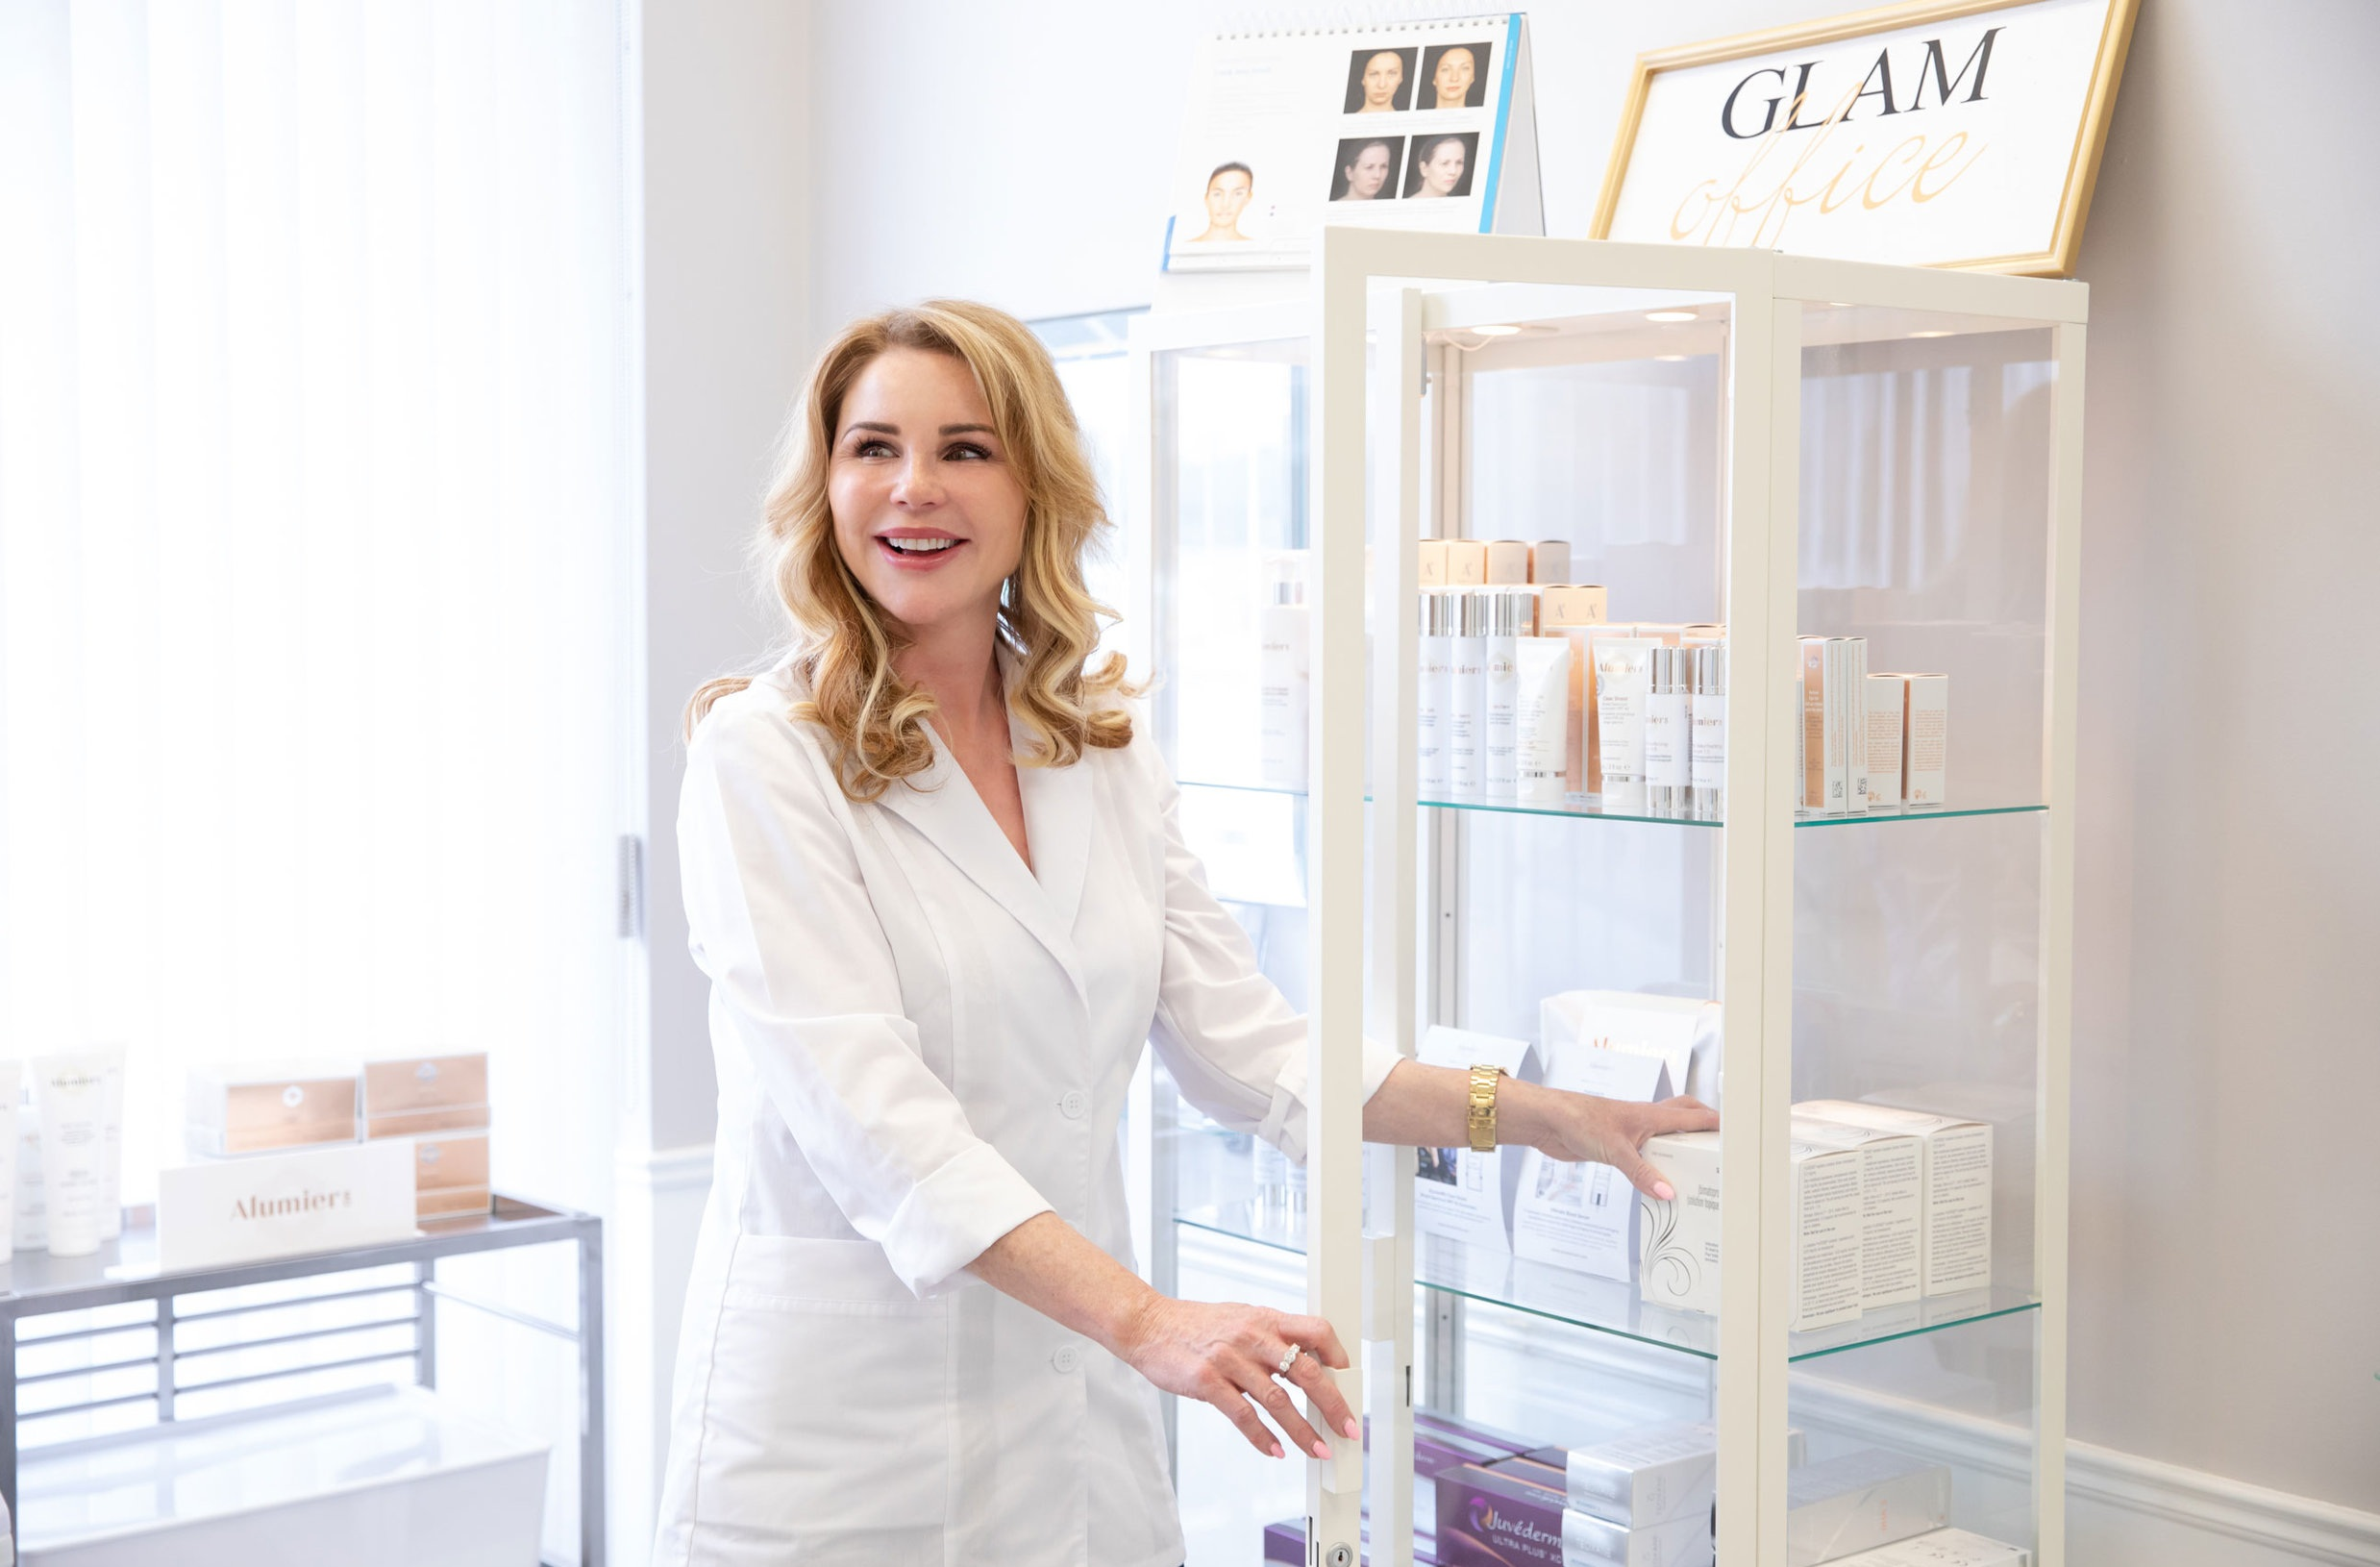 Luxe-lit-medical-aesthetics-botox-fillers